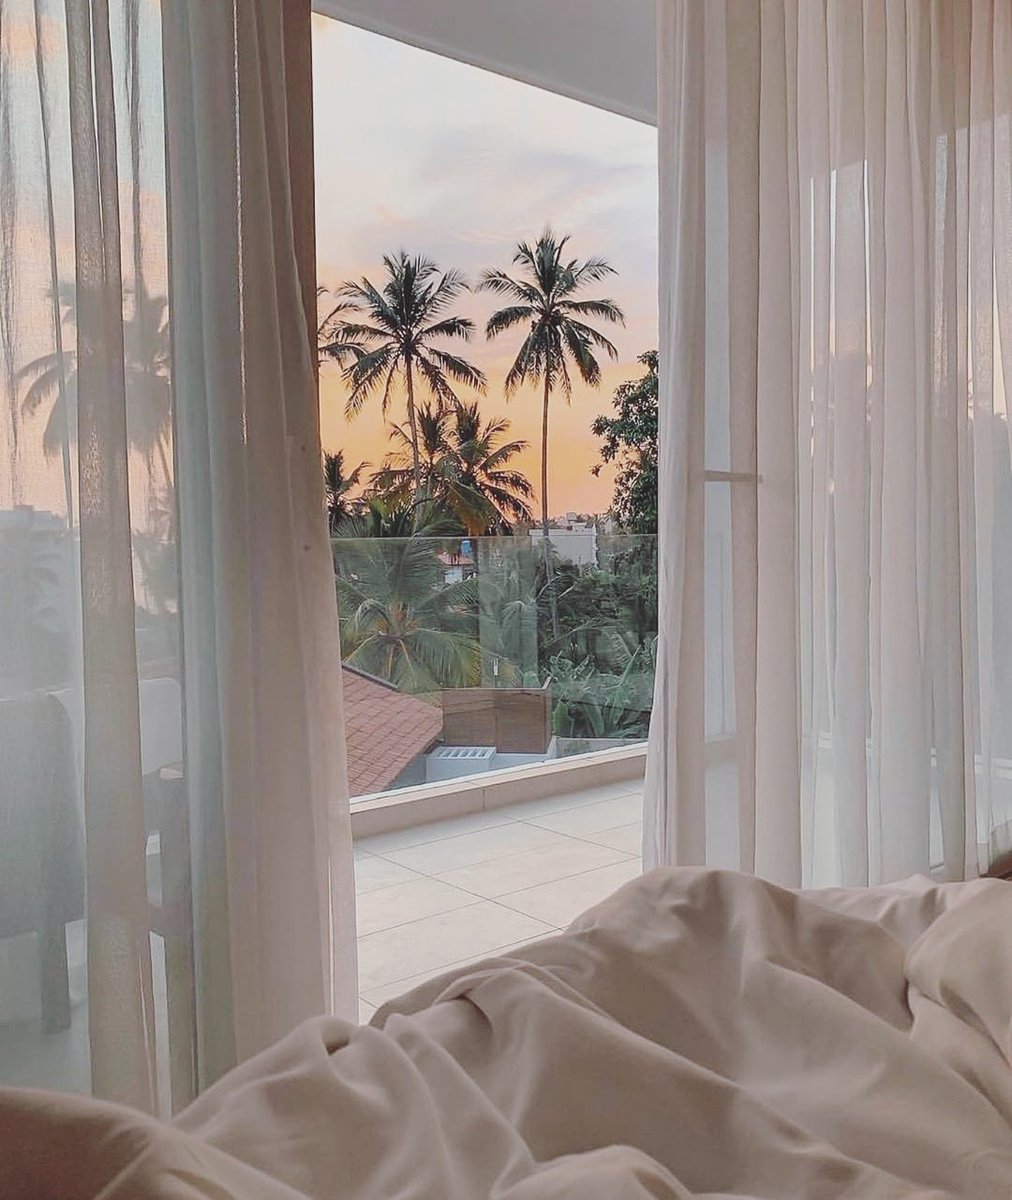 Image for Waking up to this view 💭💭   #dreamy https://t.co/UvJaYnIrGN